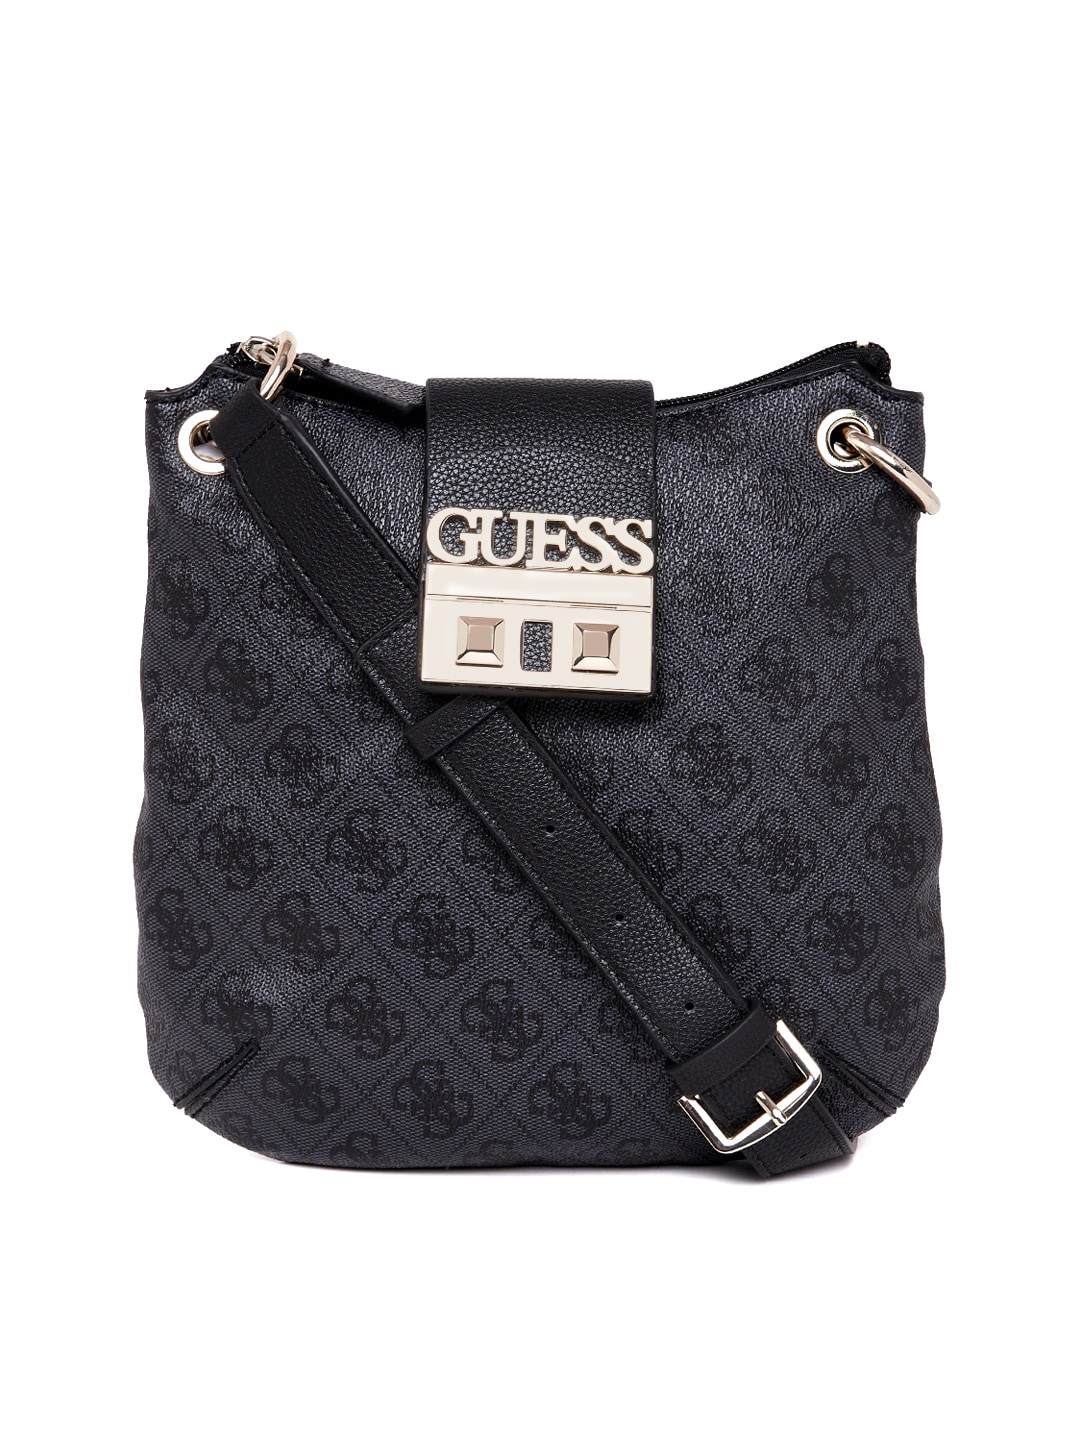 4fb9f8a9e987 Buy GUESS Olive Green Textured Sling Bag - Handbags for Women ...